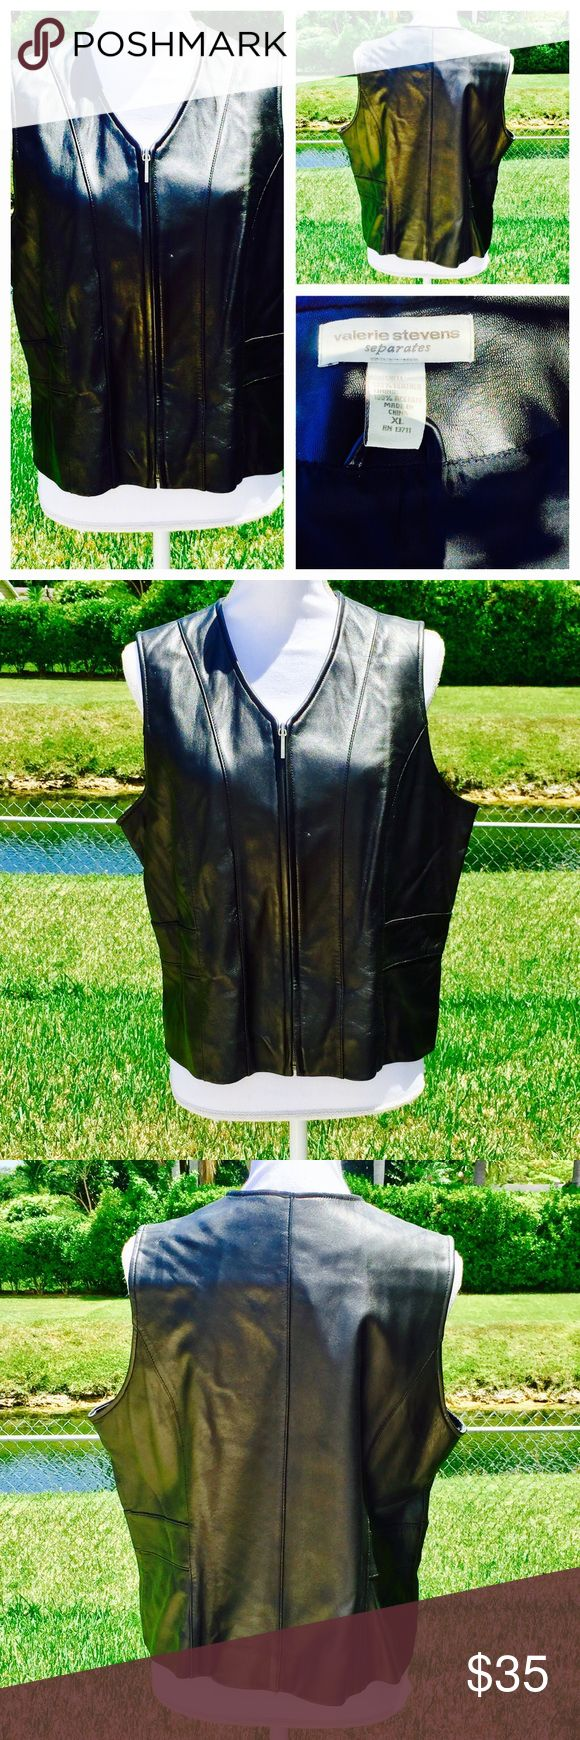 Valerie Stevens black leather vest size XL Valerie Stevens black leather vest size XL, immaculate and matches the leather pants listed. Valerie Stevens Jackets & Coats